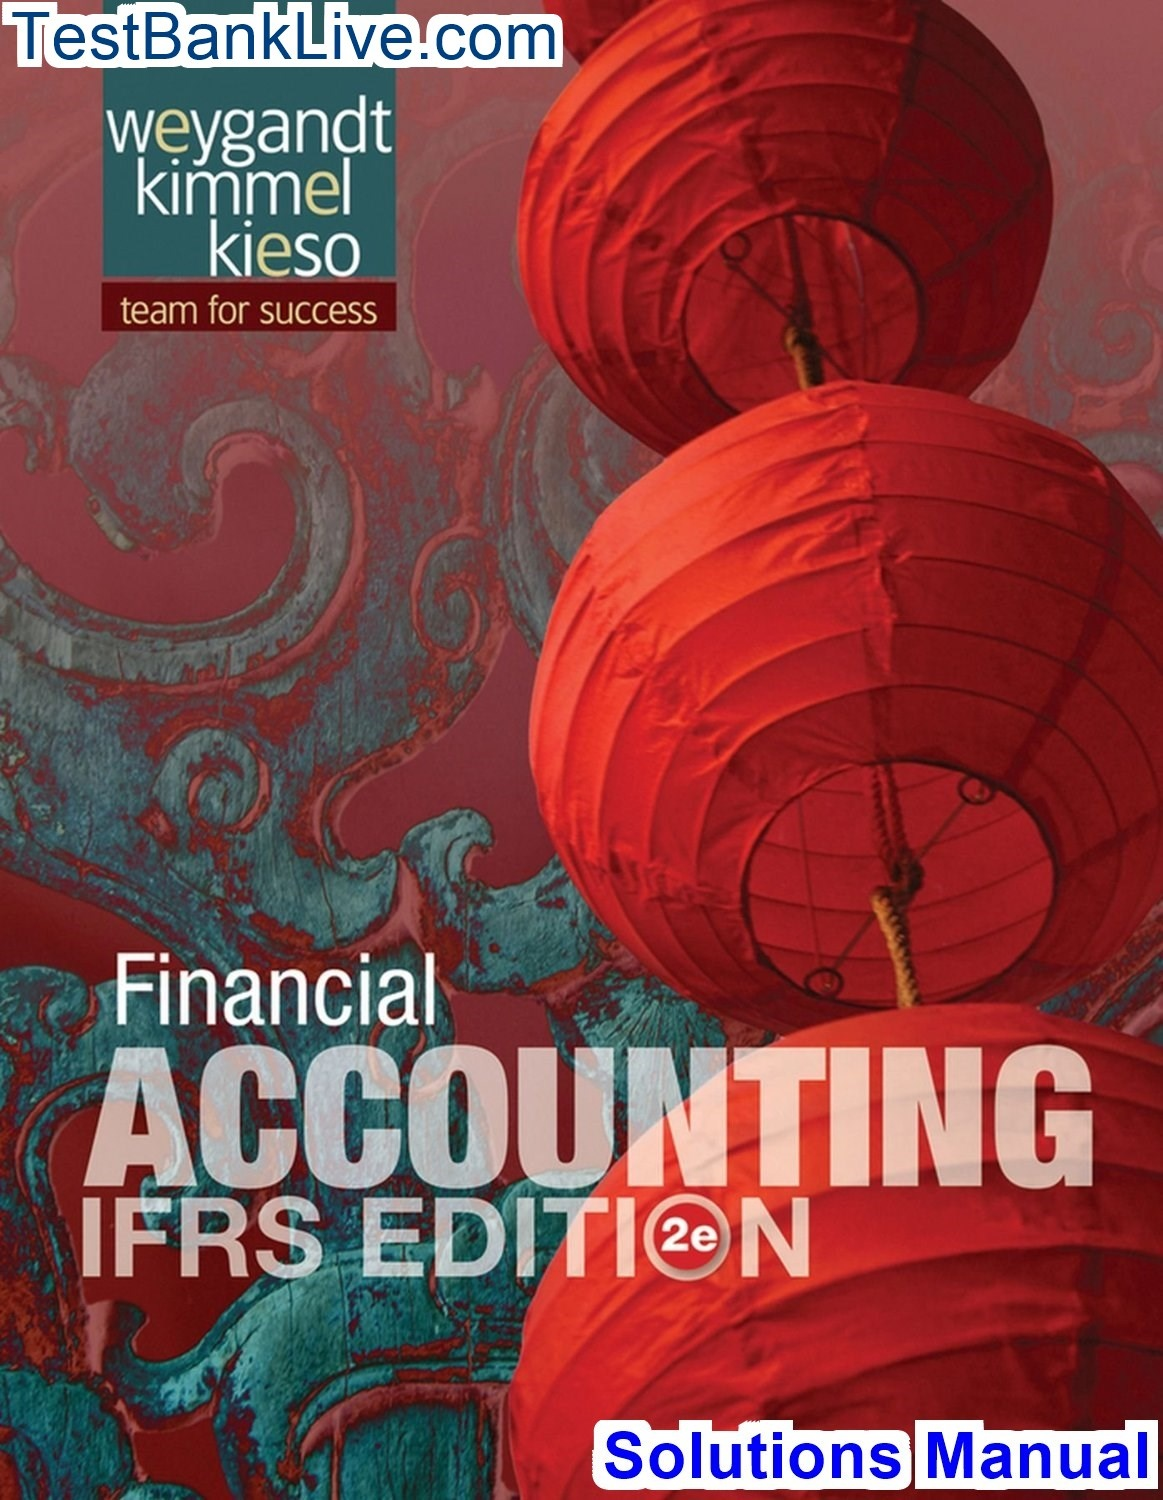 Solutions manual for financial accounting ifrs edition 2nd edition.